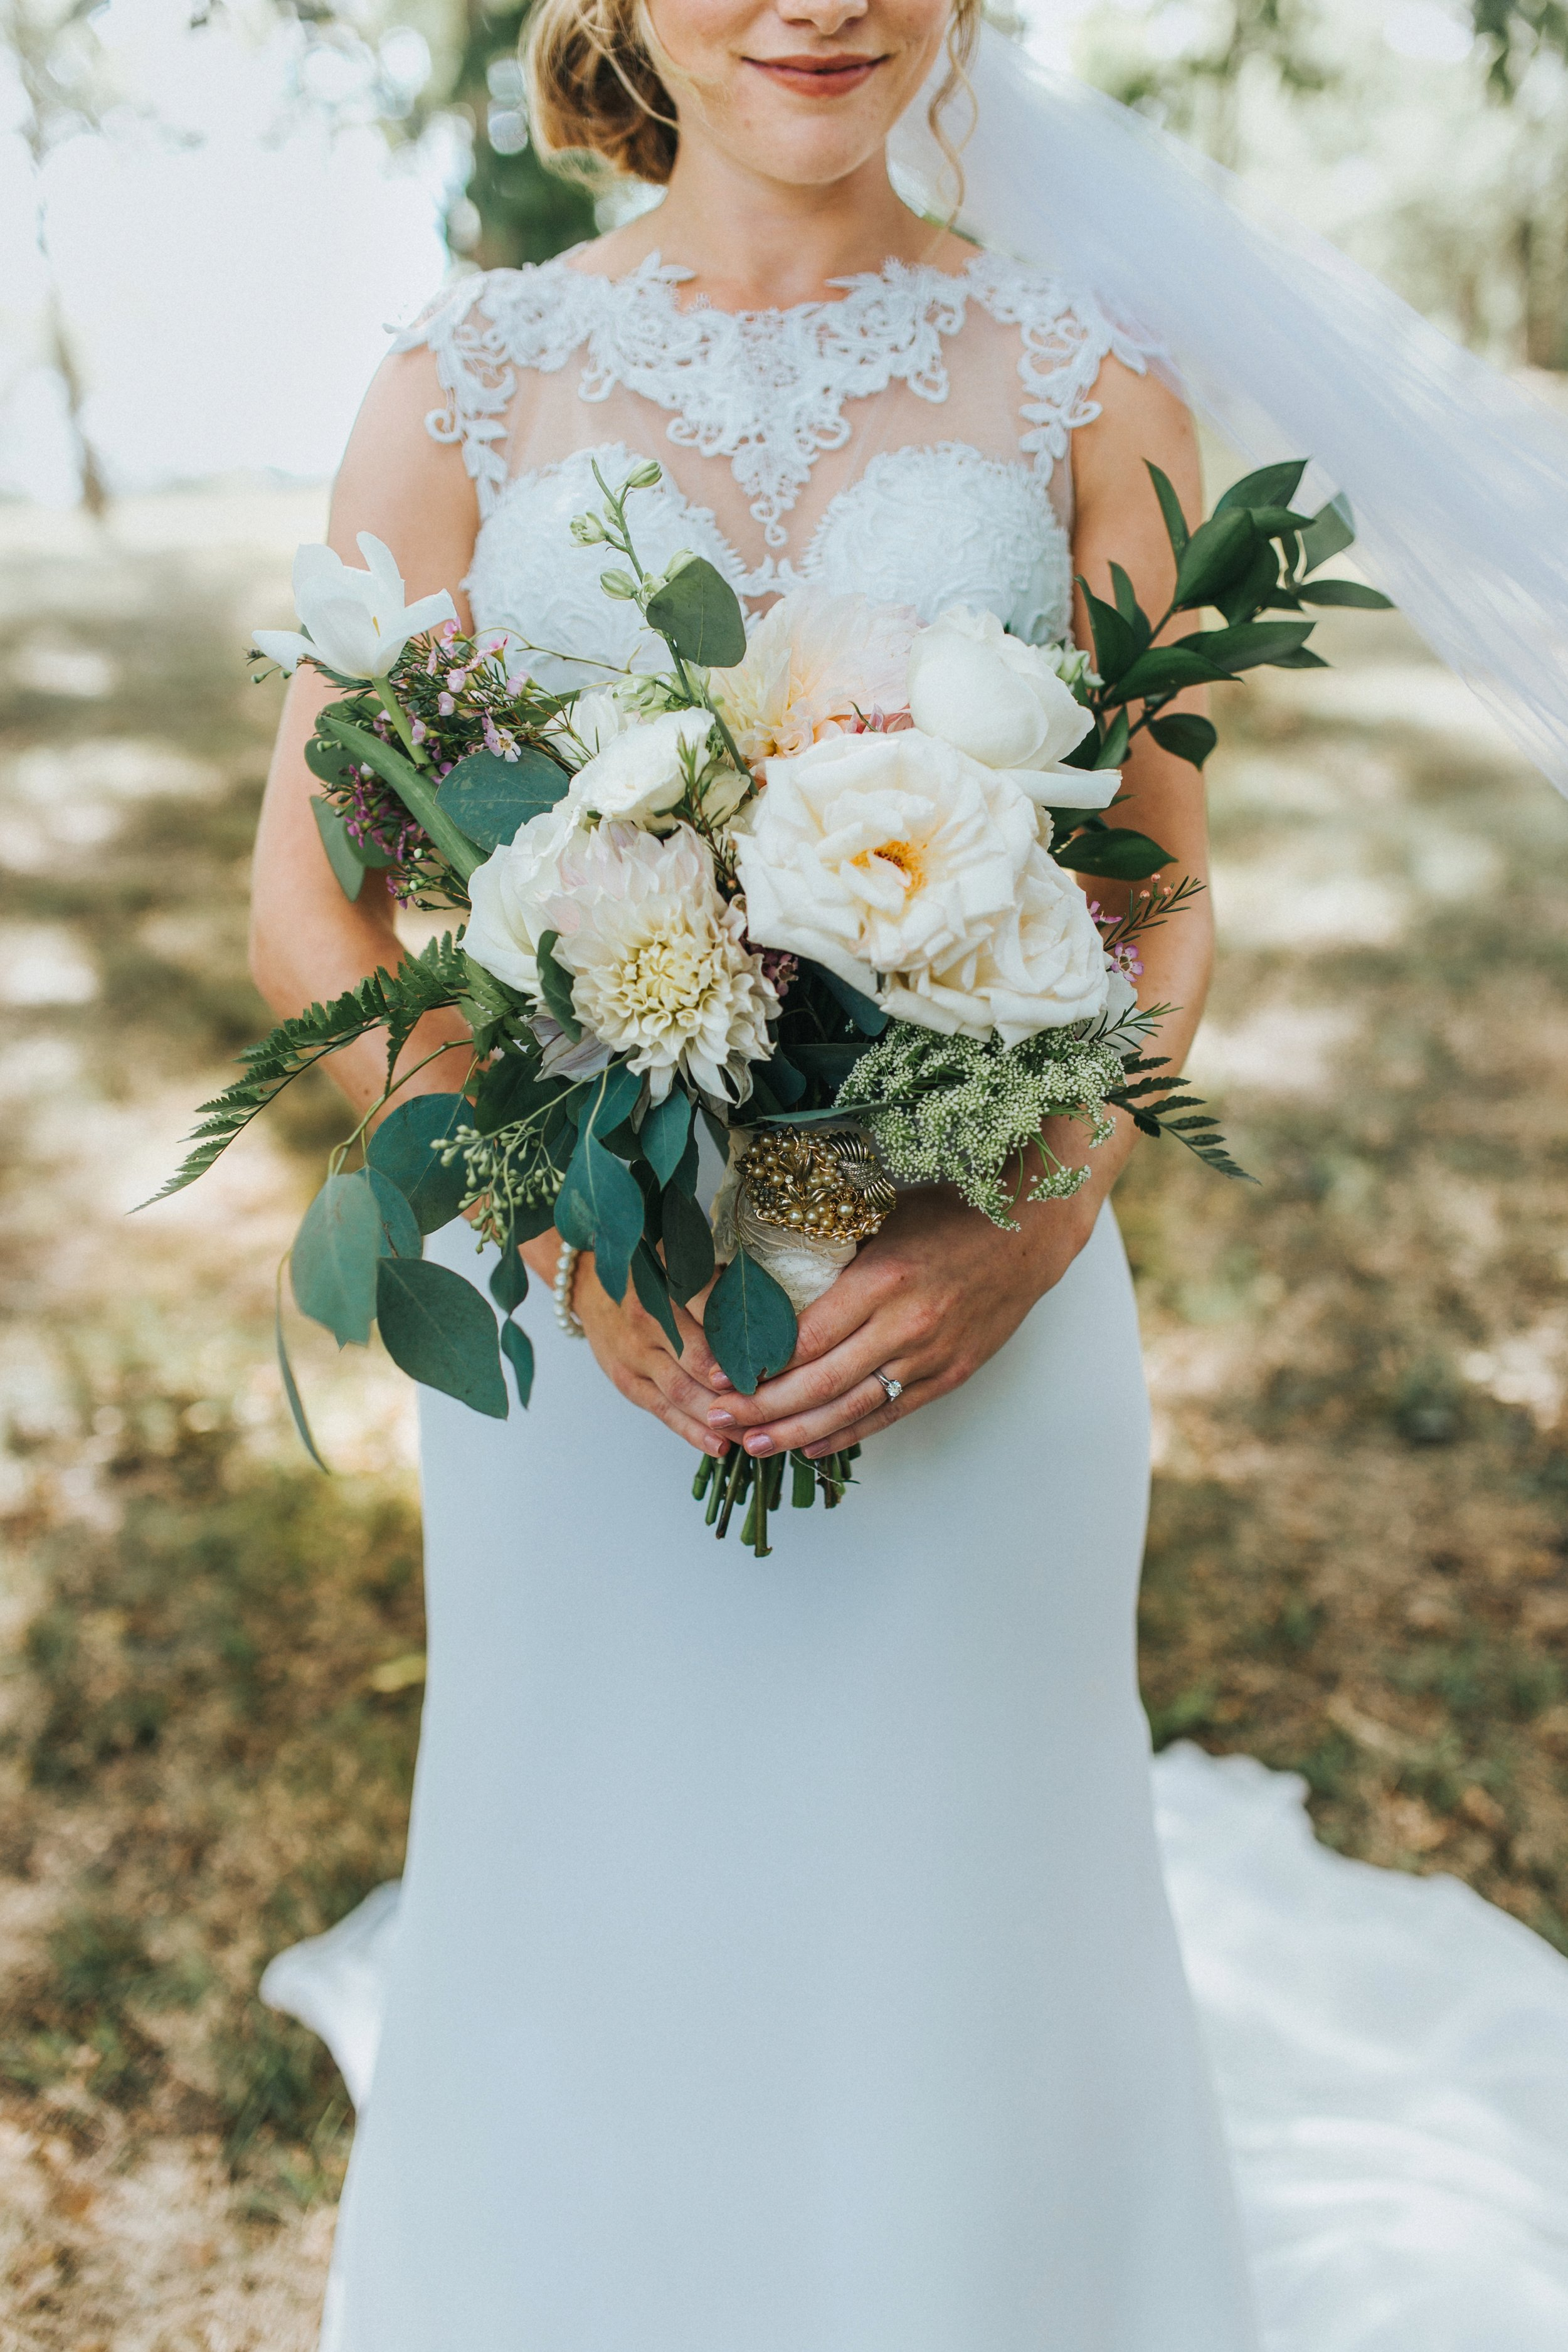 Virginia wedding photographer, Charlottesville wedding photographer, the hunt at Selma wedding, amelia virginia wedding photographer_0160.jpg